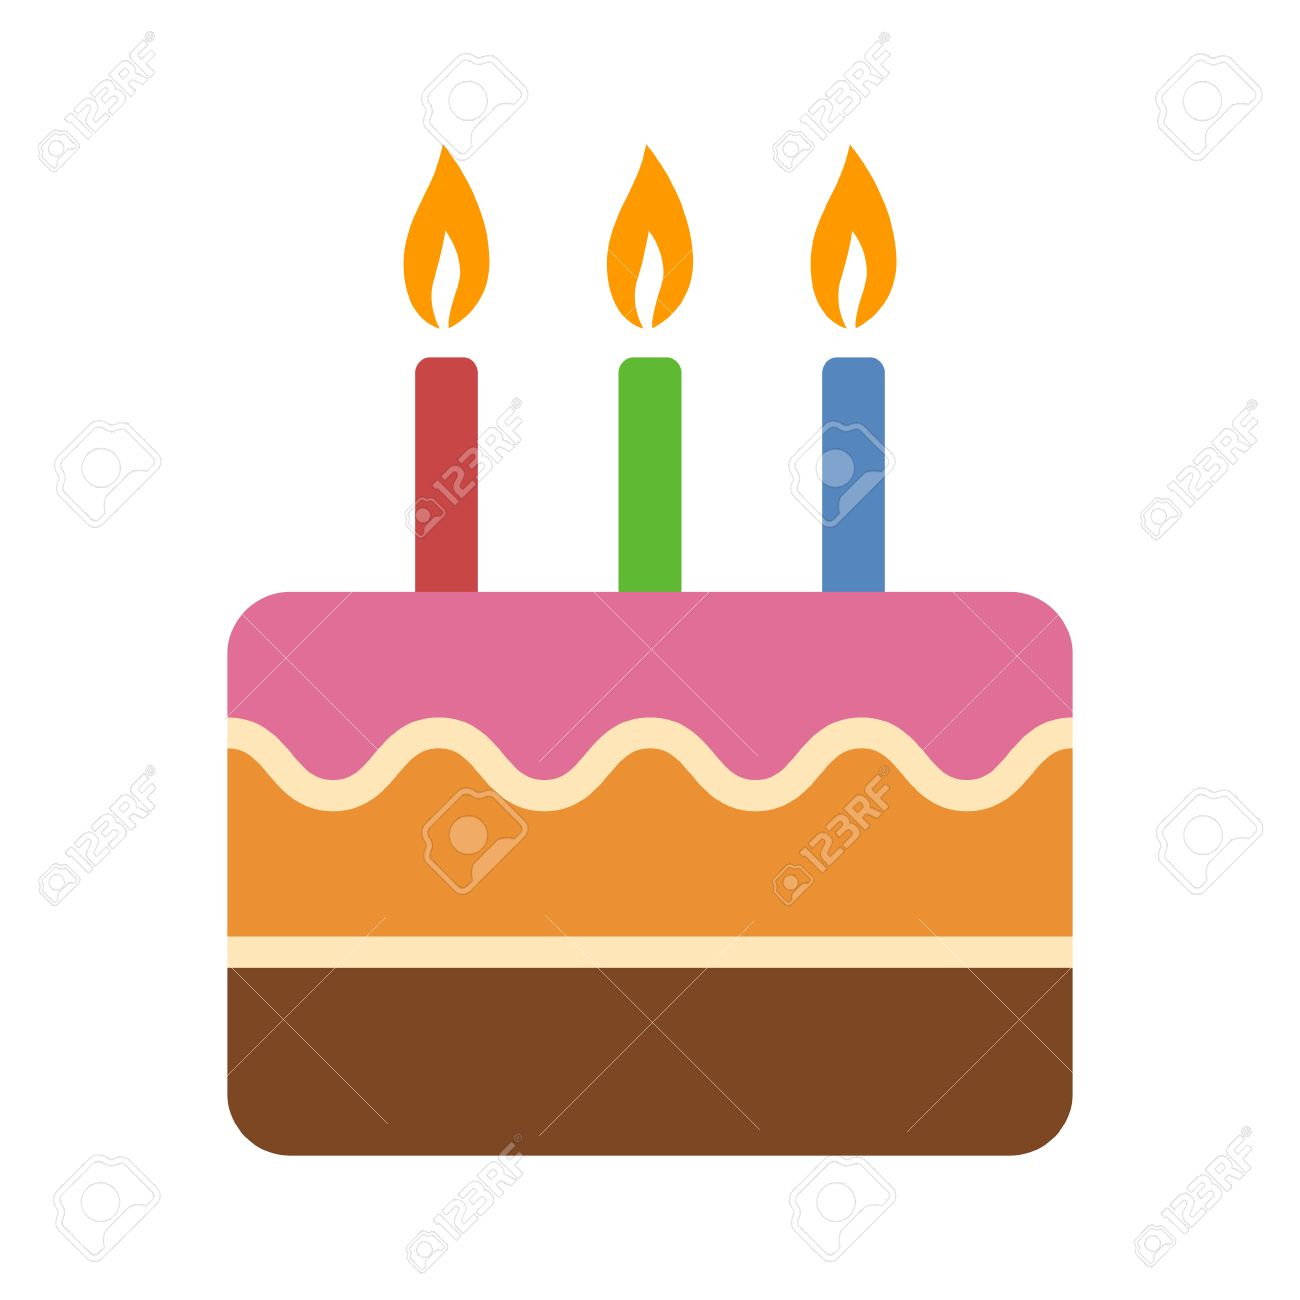 Layered Colorful Birthday Cake With Candles Flat Icon For Food Apps And Websites Stock Vector